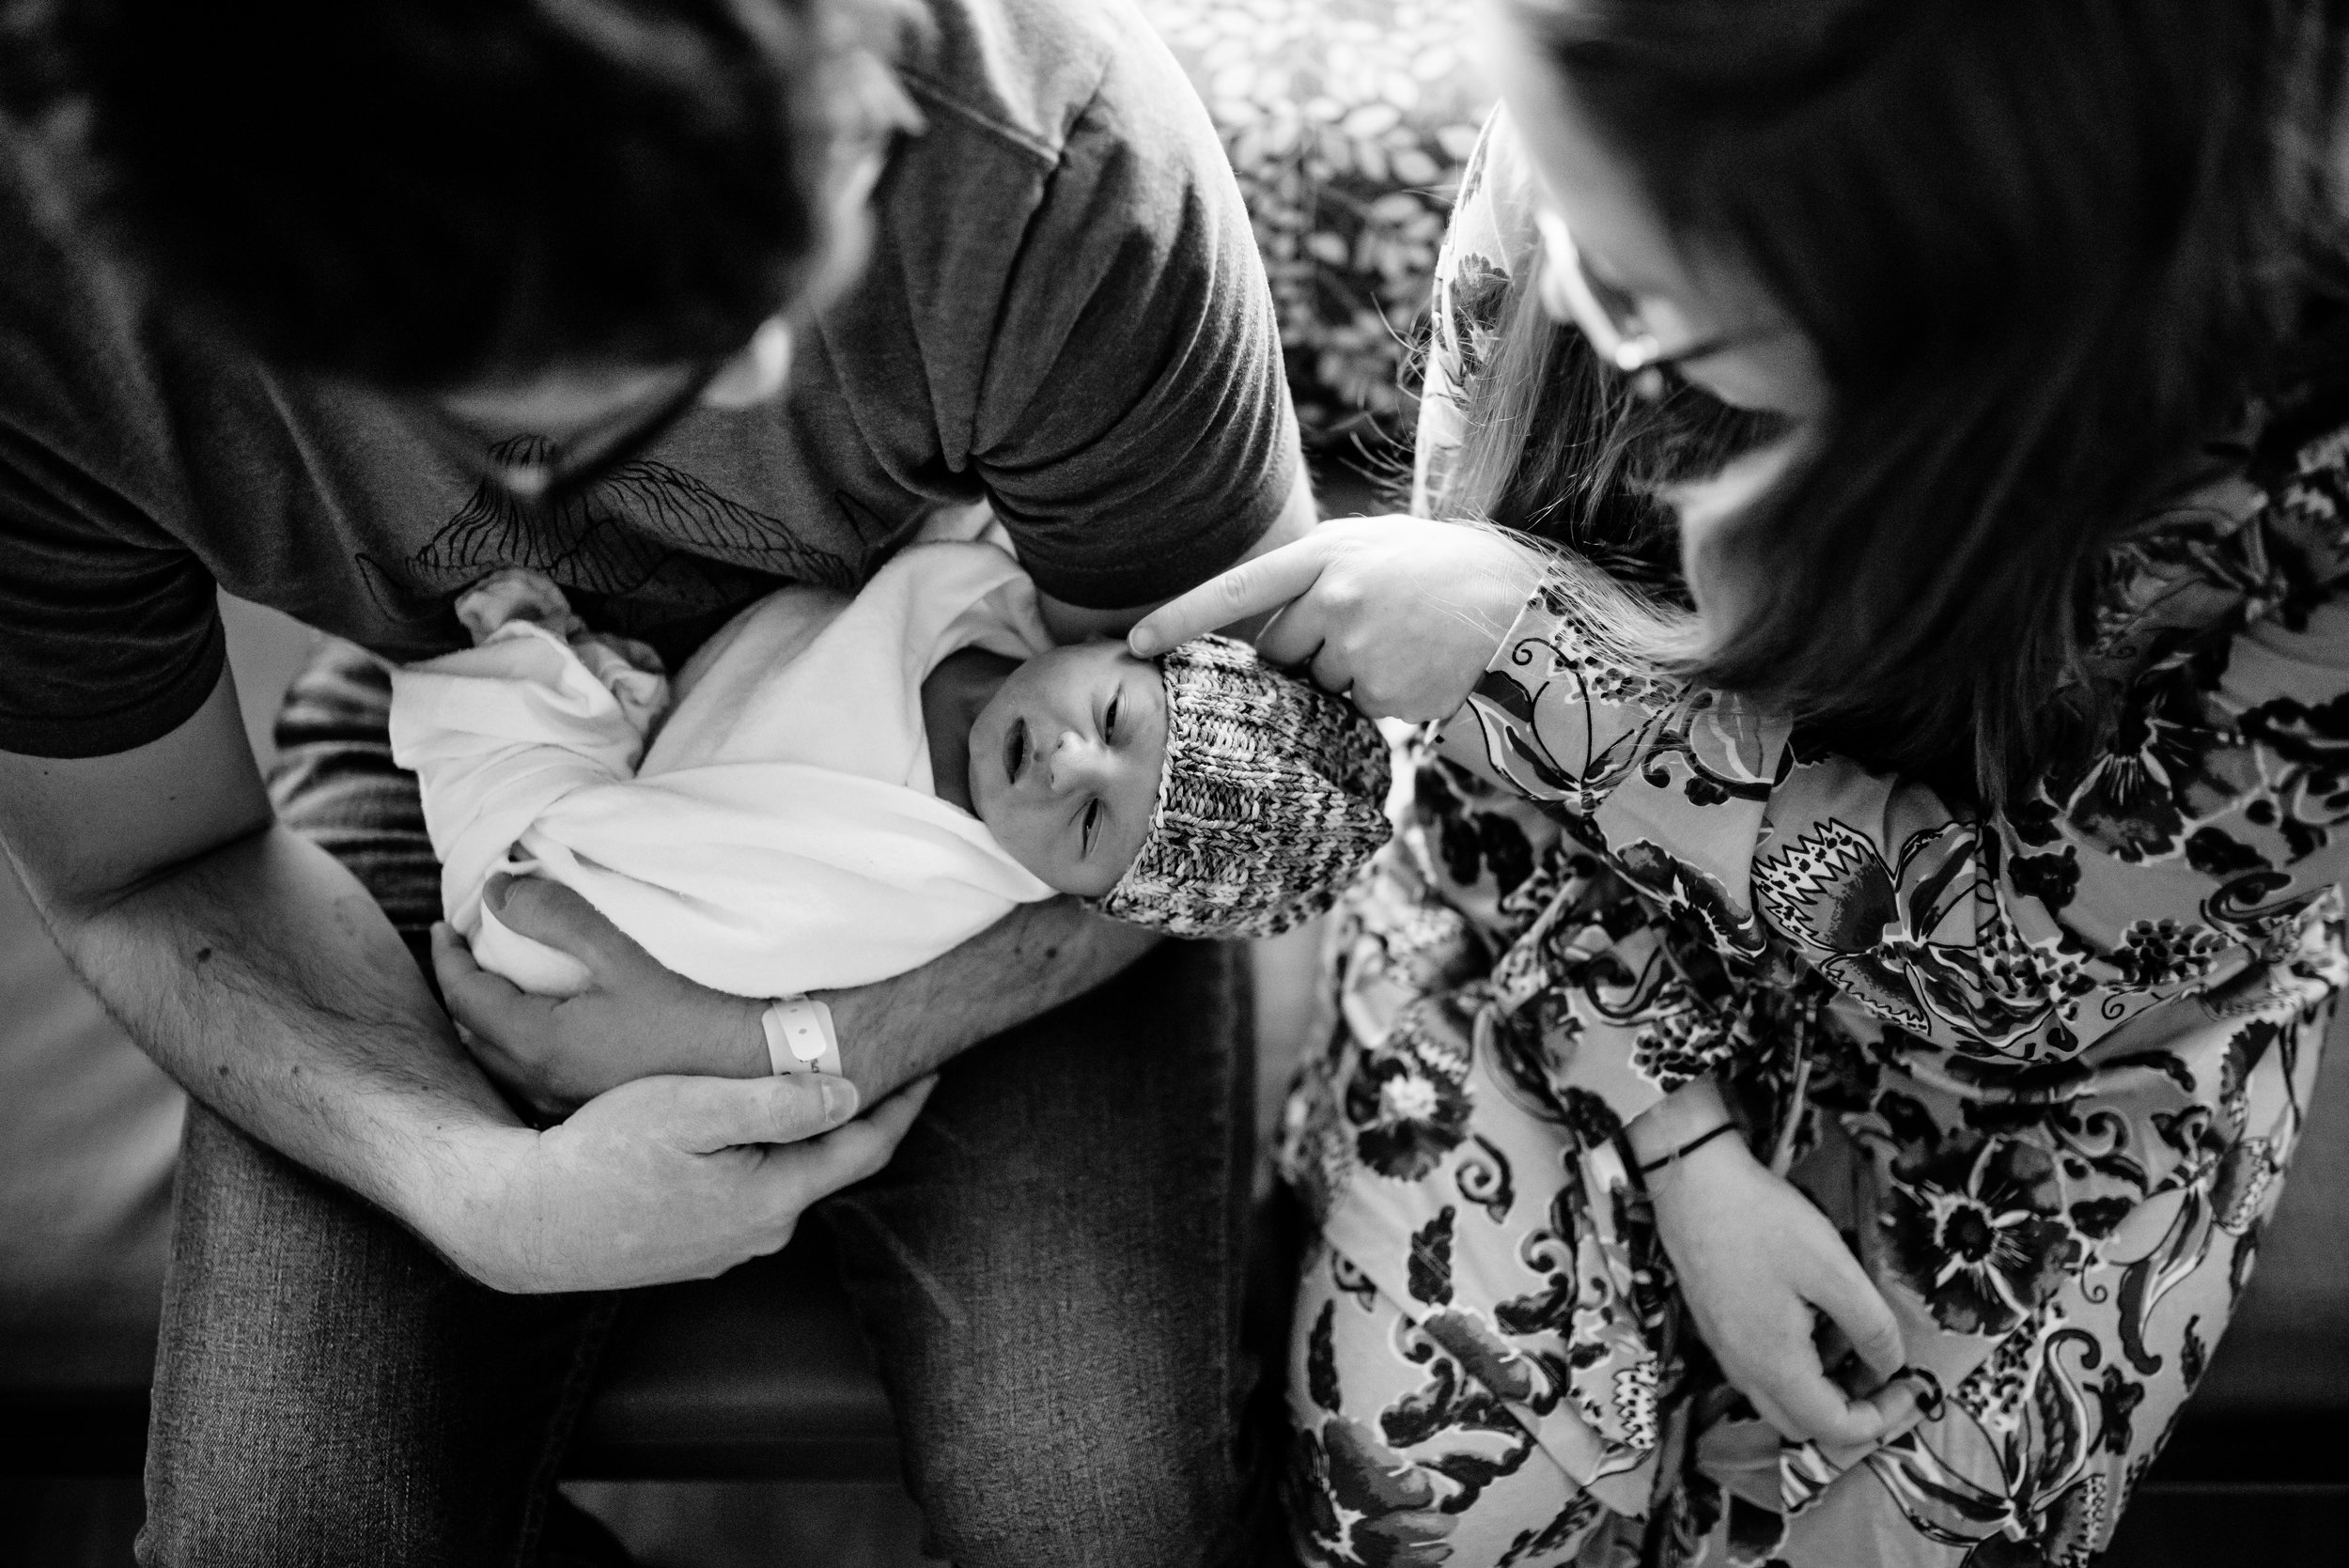 Mom and Dad look down at newborn baby; Mom touches baby's face